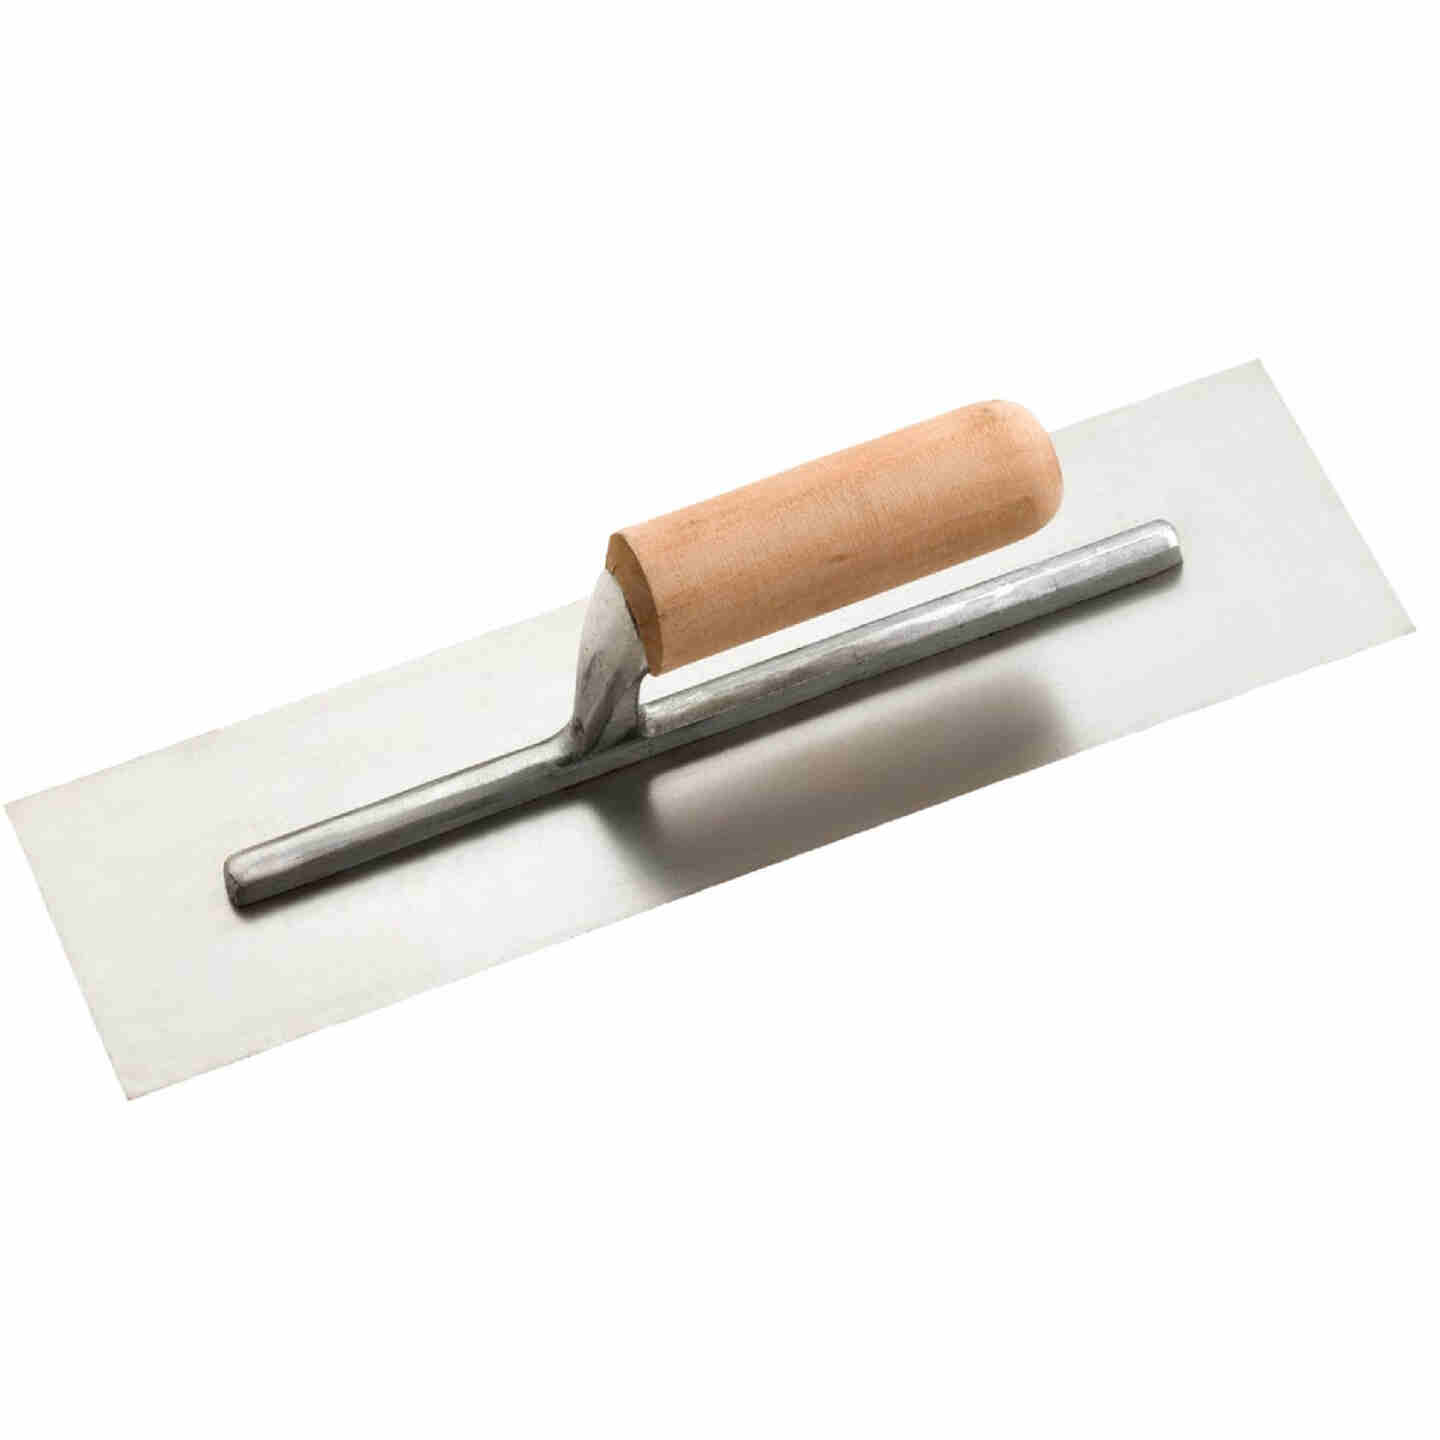 Do it 4 In. x 14 In. Finishing Trowel with Basswood Handle Image 1